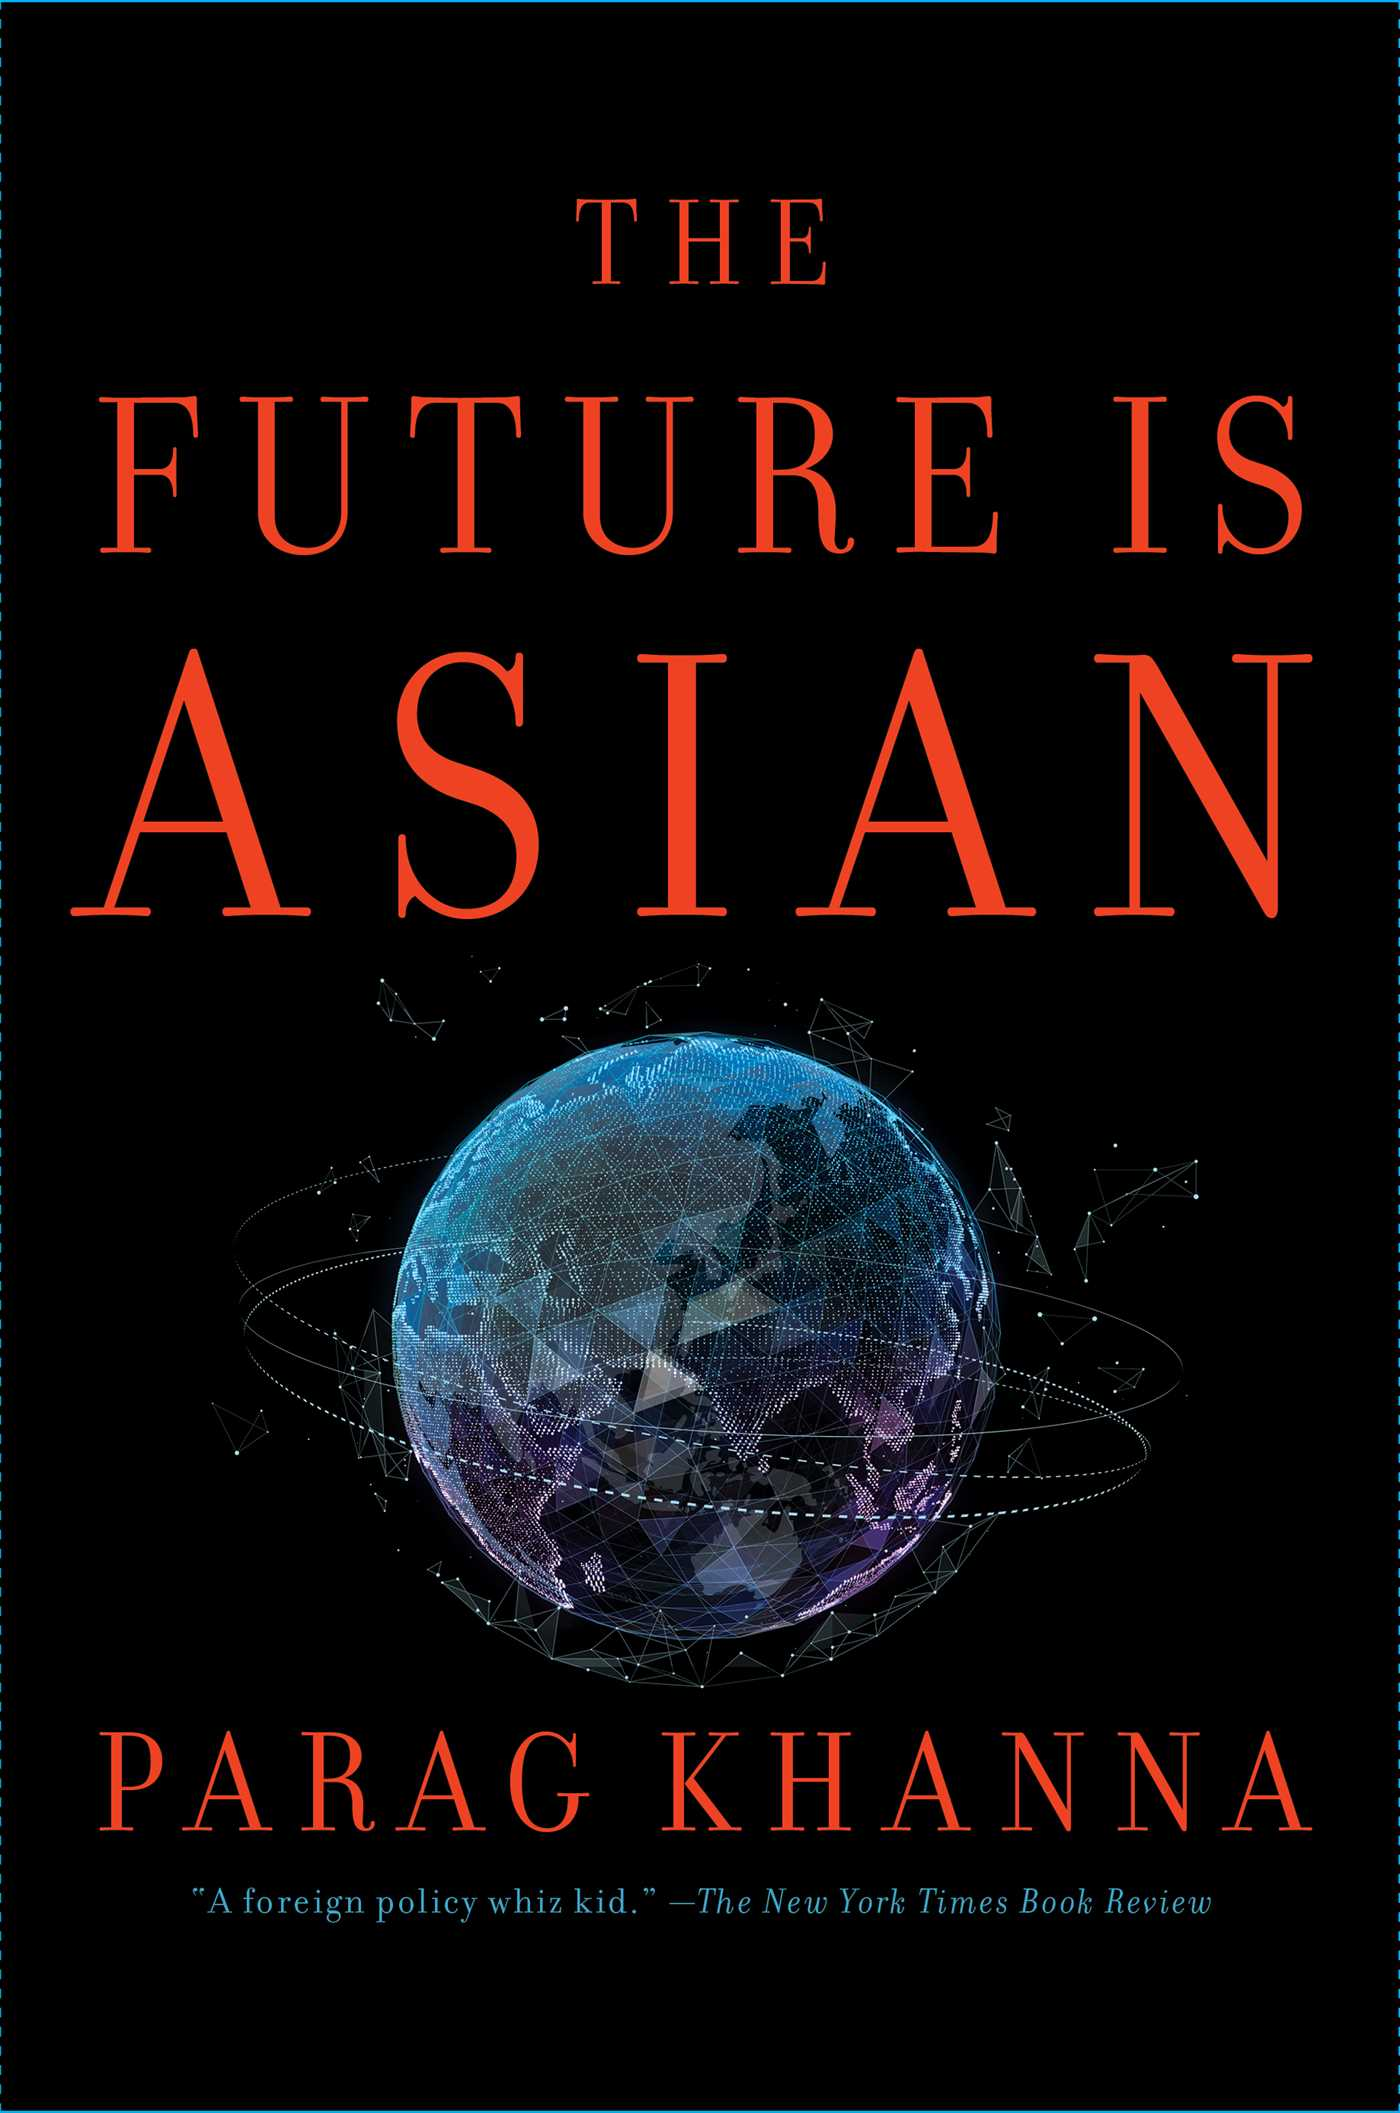 The future is asian 9781501196263 hr